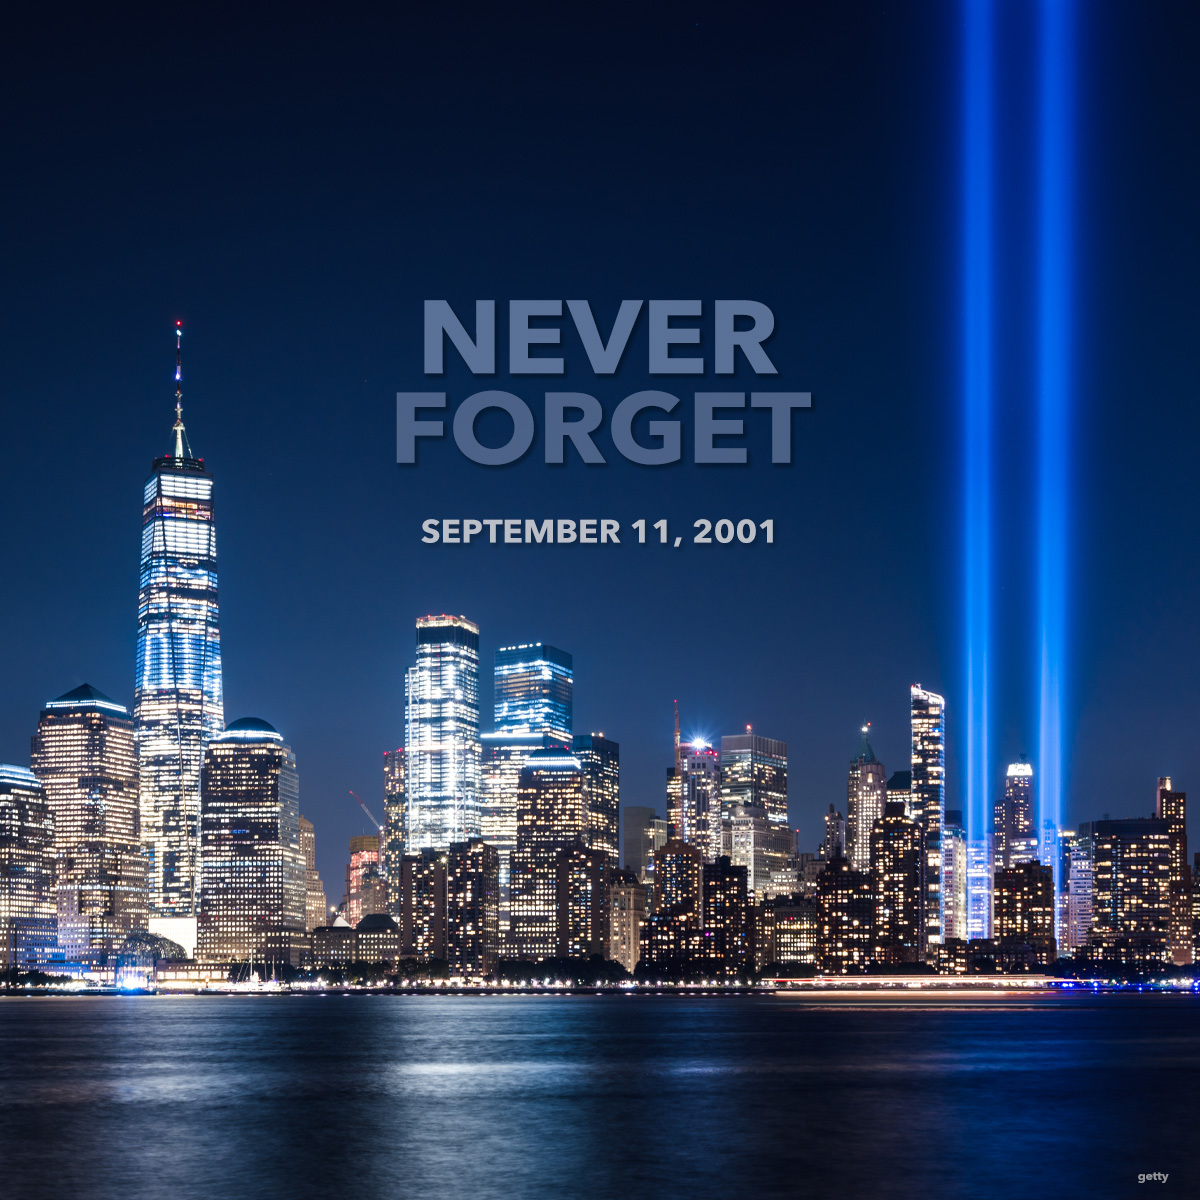 We will always remember #NeverForget